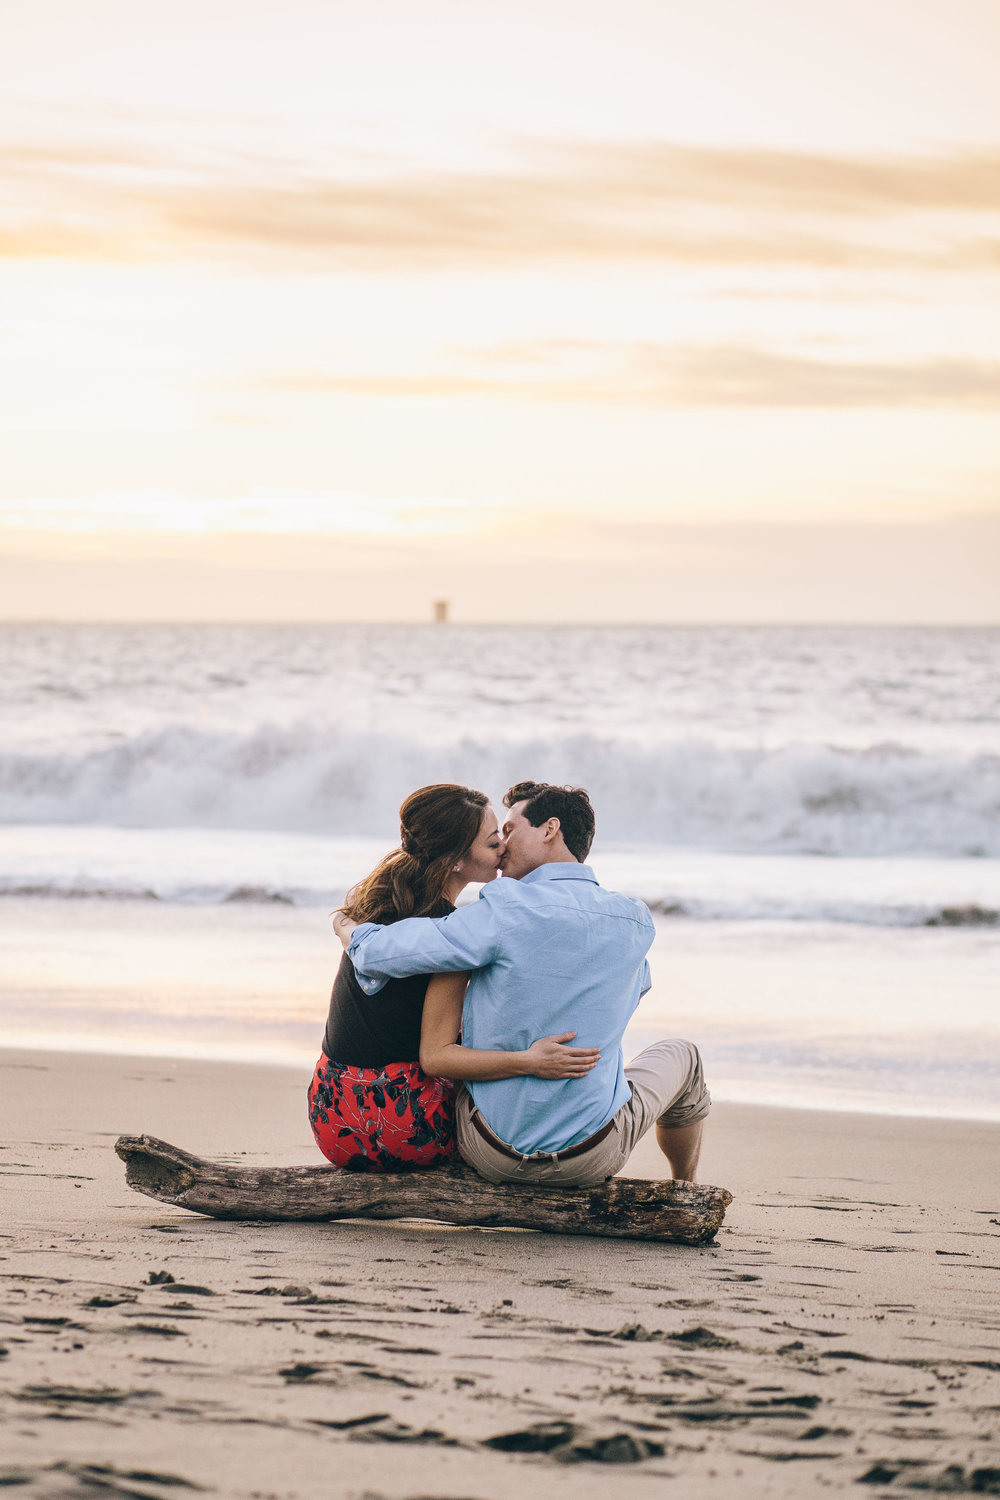 Best Engagement Photo Locations in San Francisco - Baker Beach Engagement Photos by JBJ Pictures (8).jpg